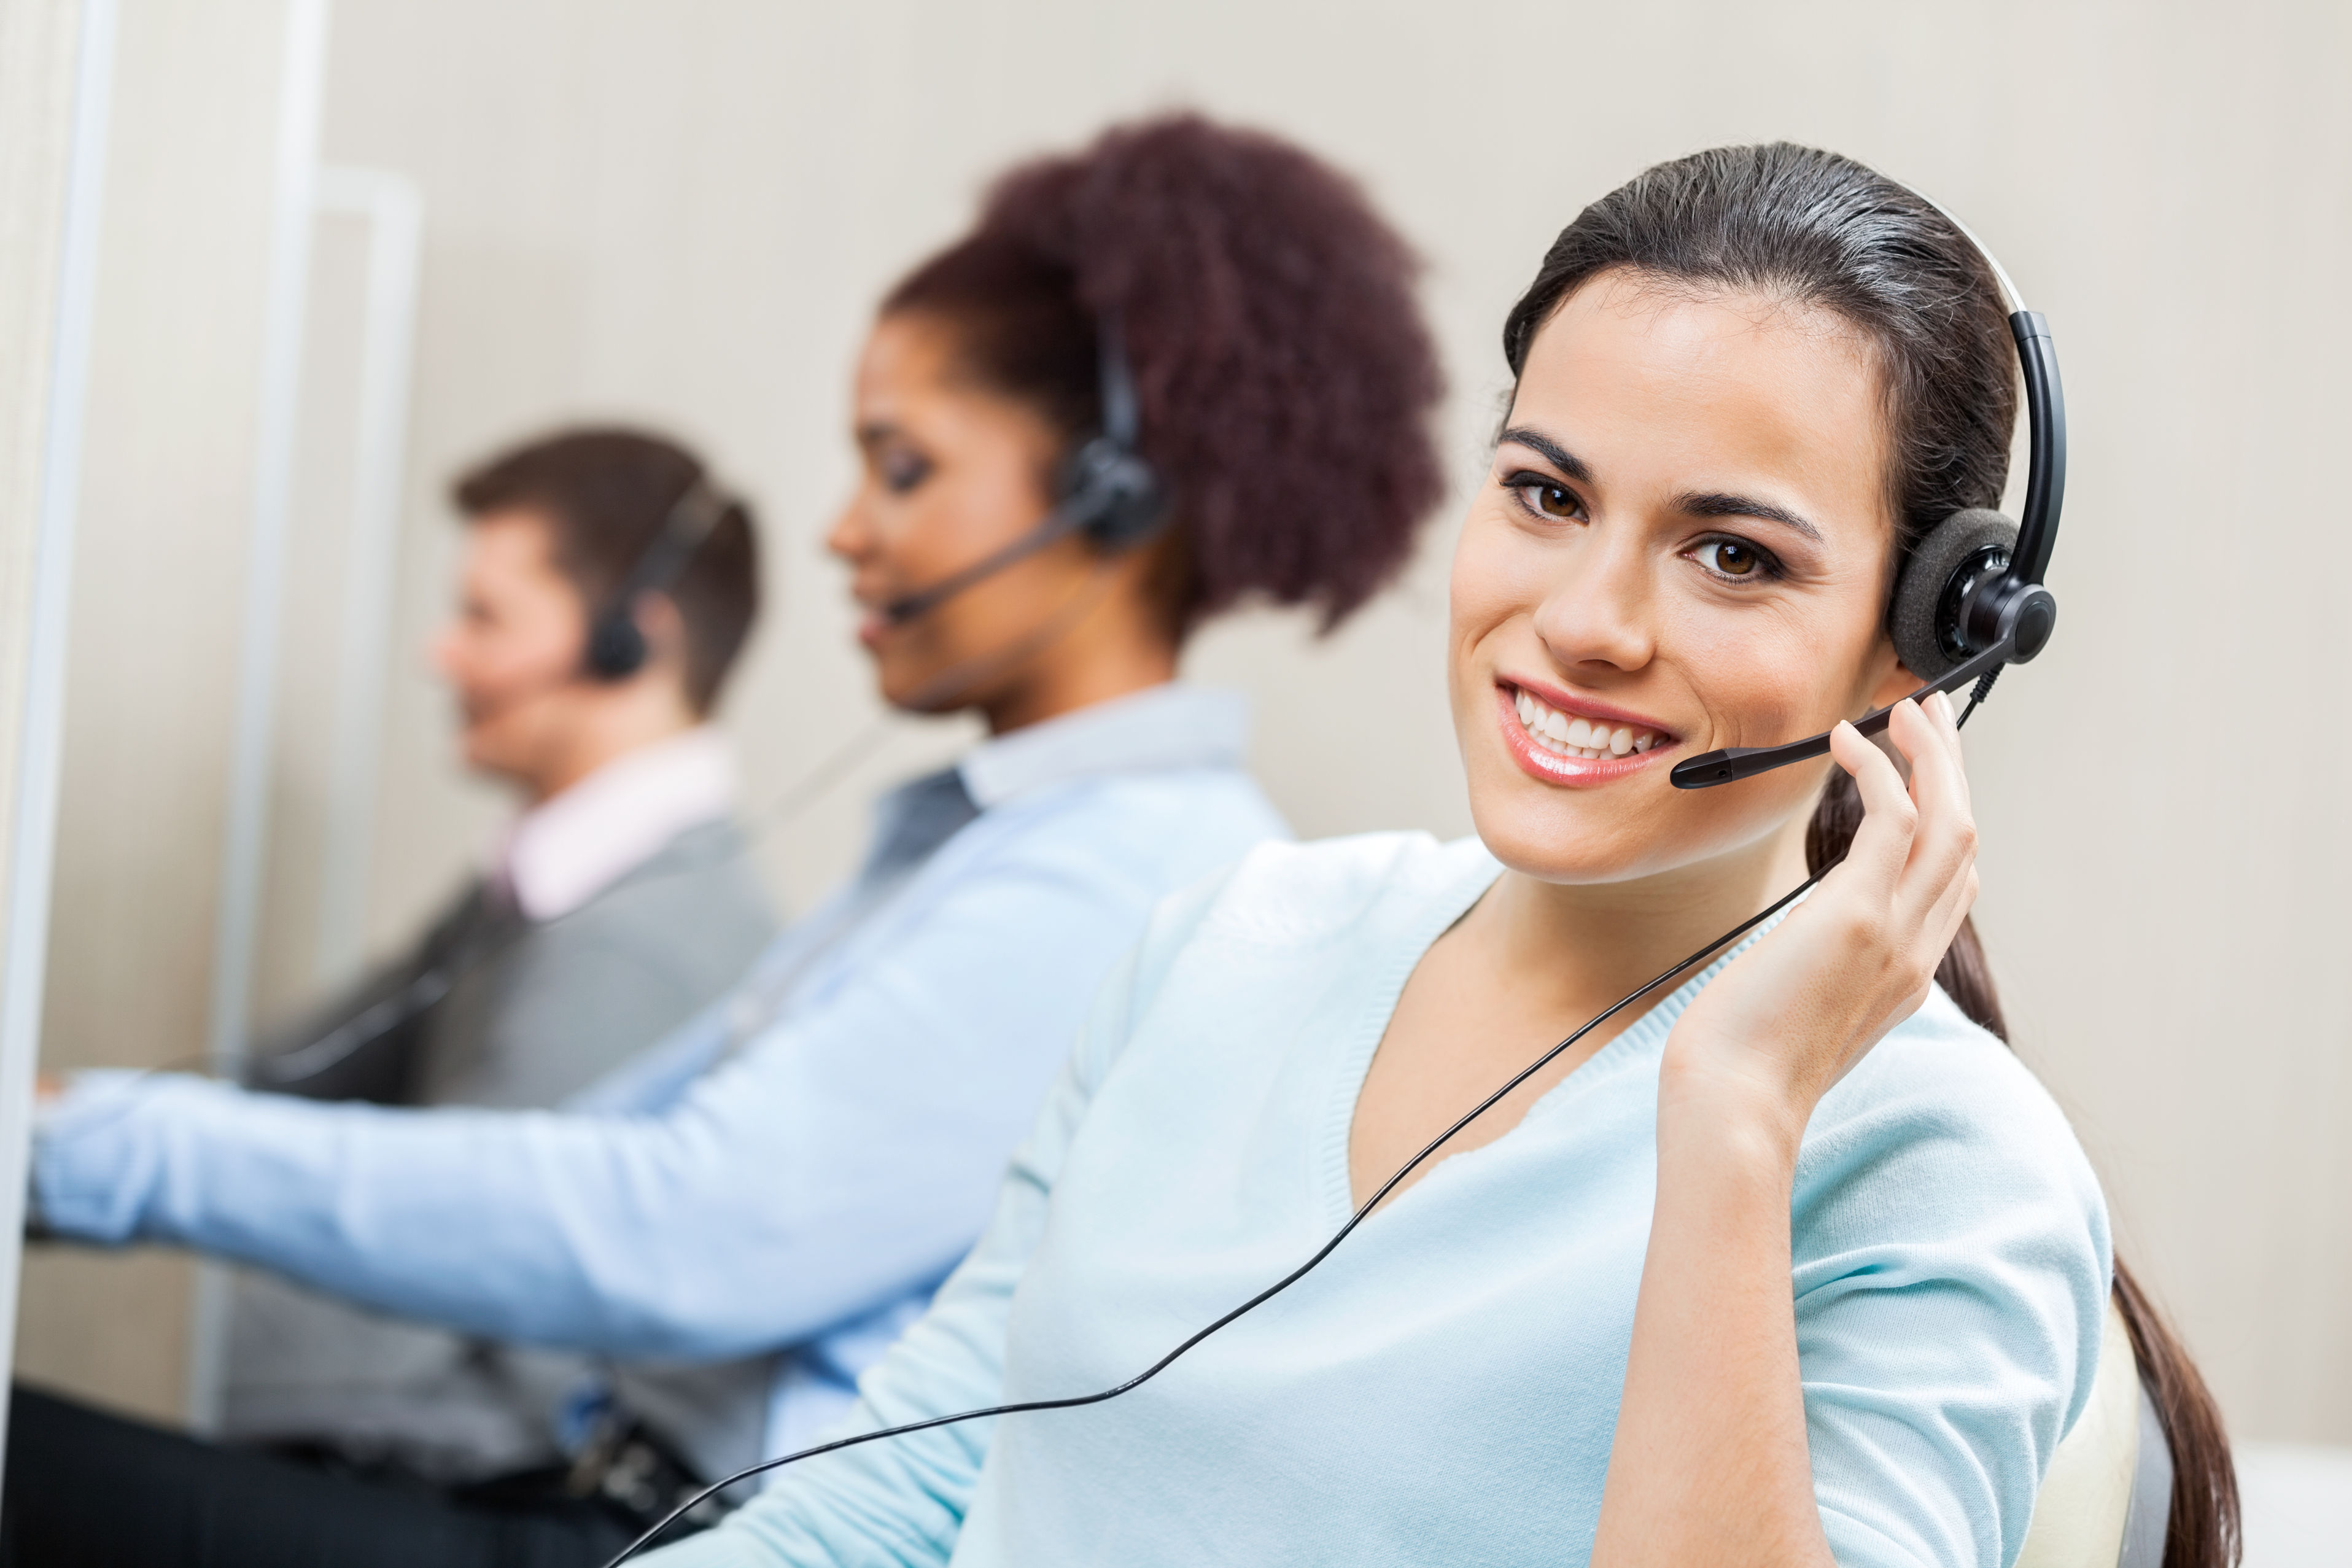 City Of Asheville Customer Services Phone Line To Change